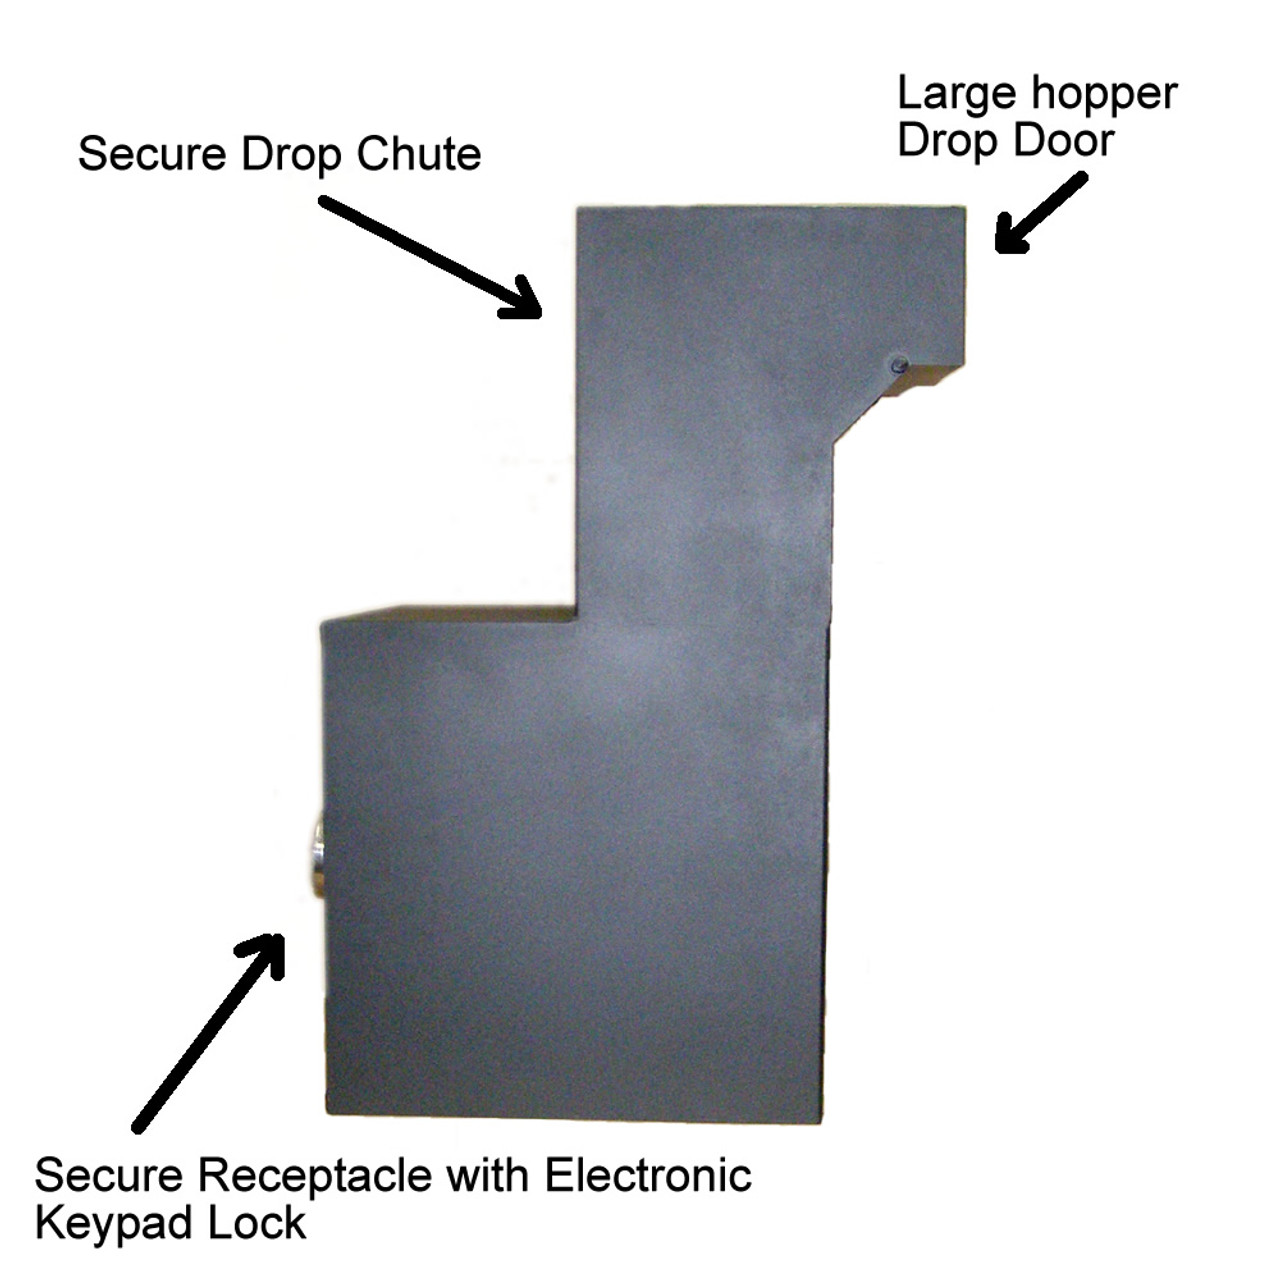 Through the Wall Deposit Drop with Receptacle Safe